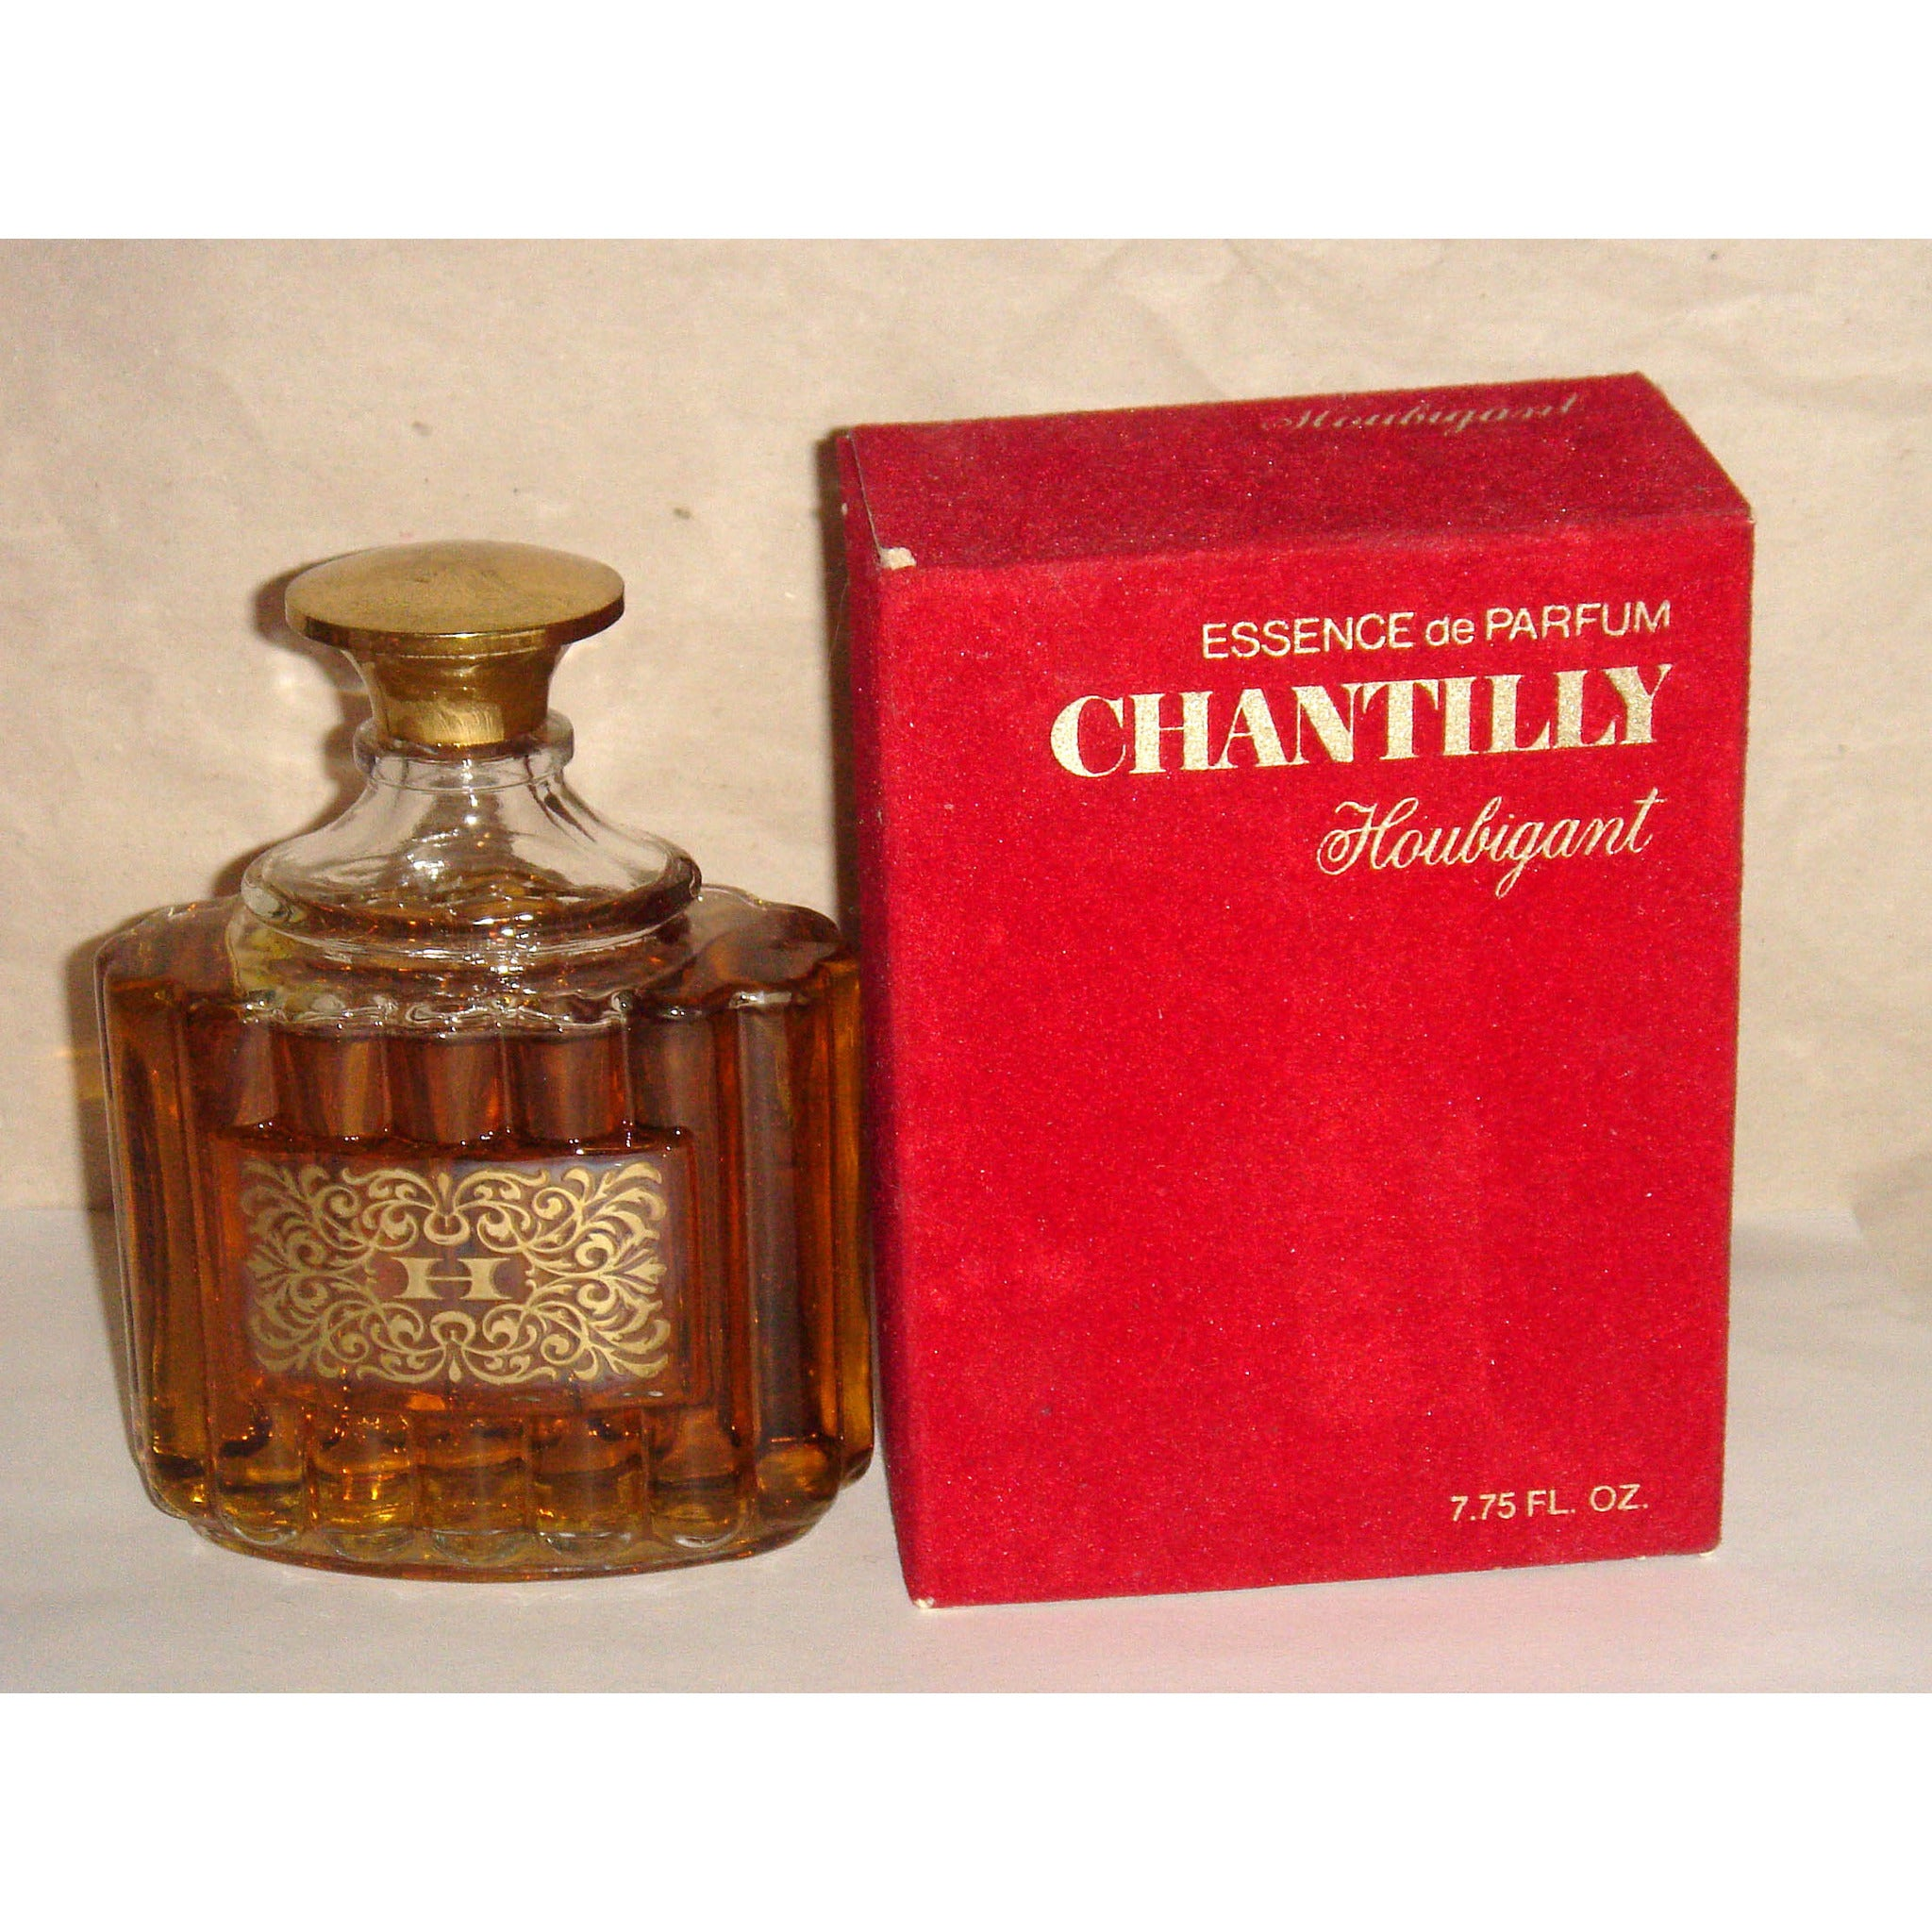 Vintage Houbigant Chantilly Essence de Parfum